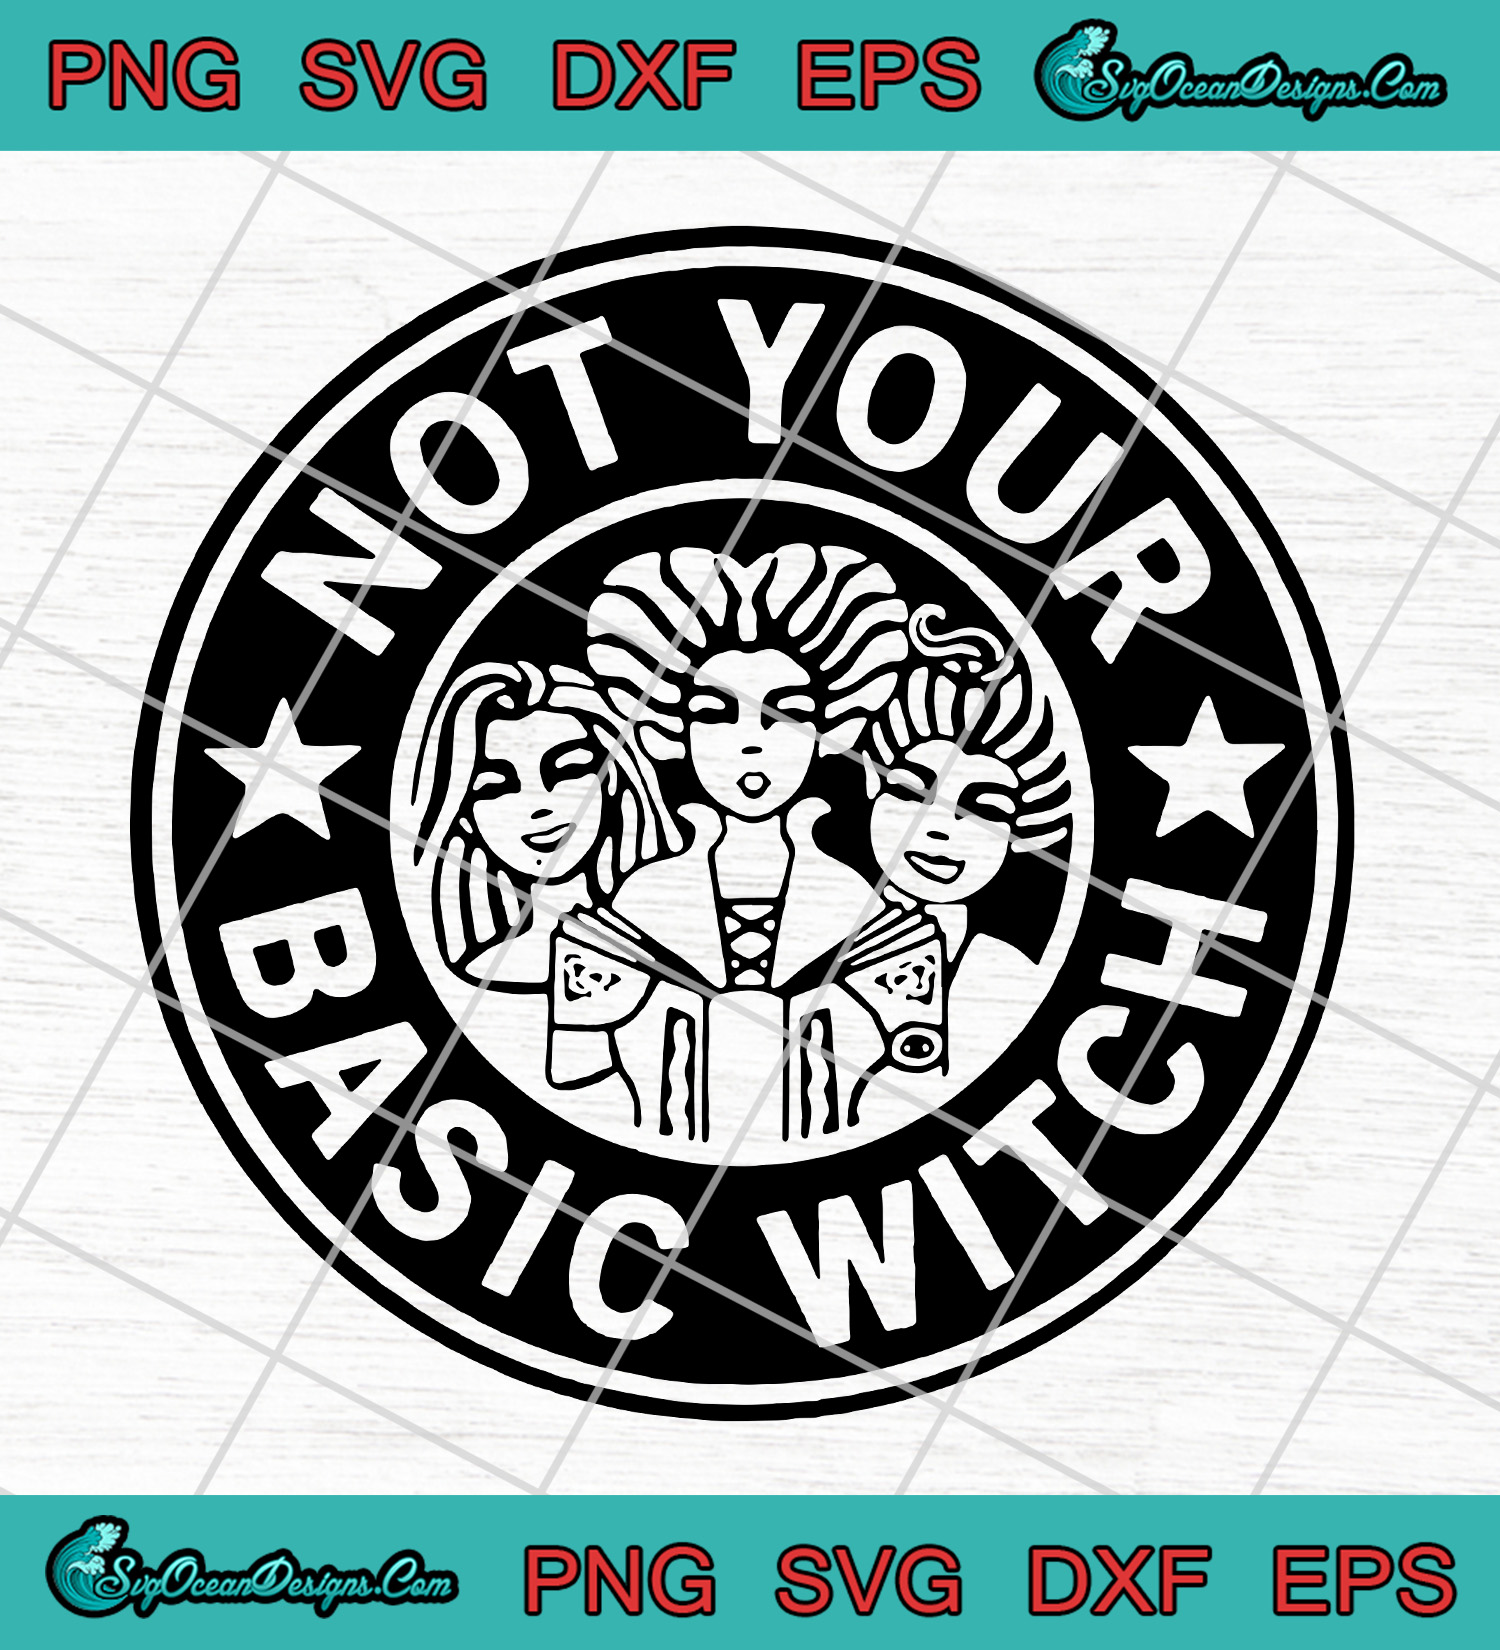 Hocus Pocus Not Your Basic Witch Starbucks Svg Png Eps Dxf Designs Digital Download